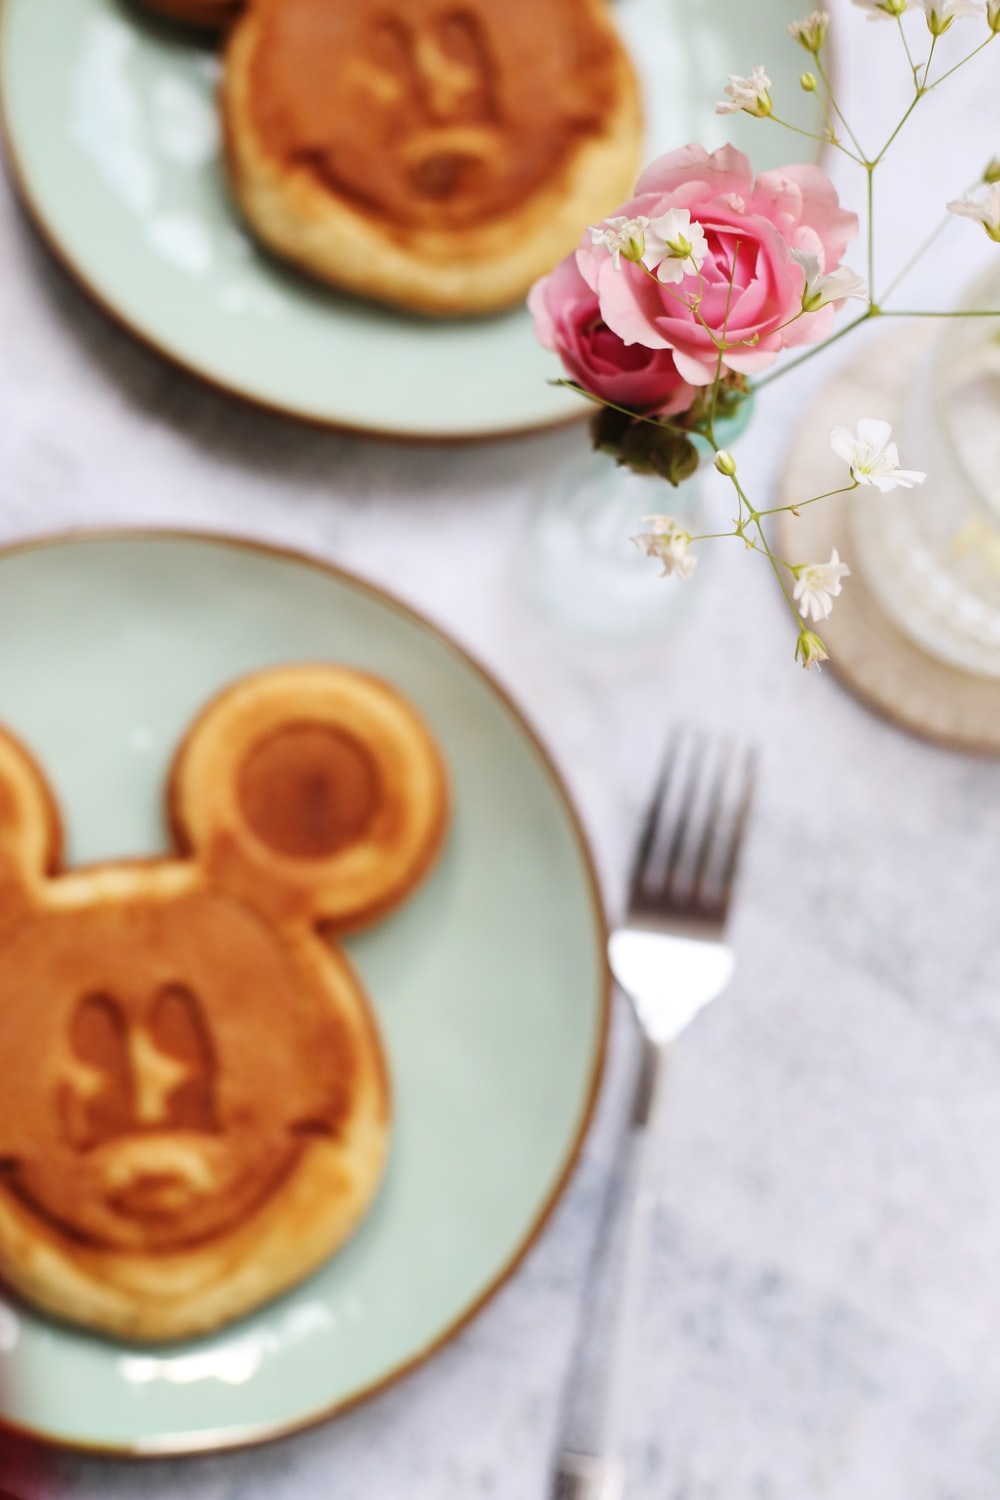 two plates of Mickey Mouse face pancakes on table